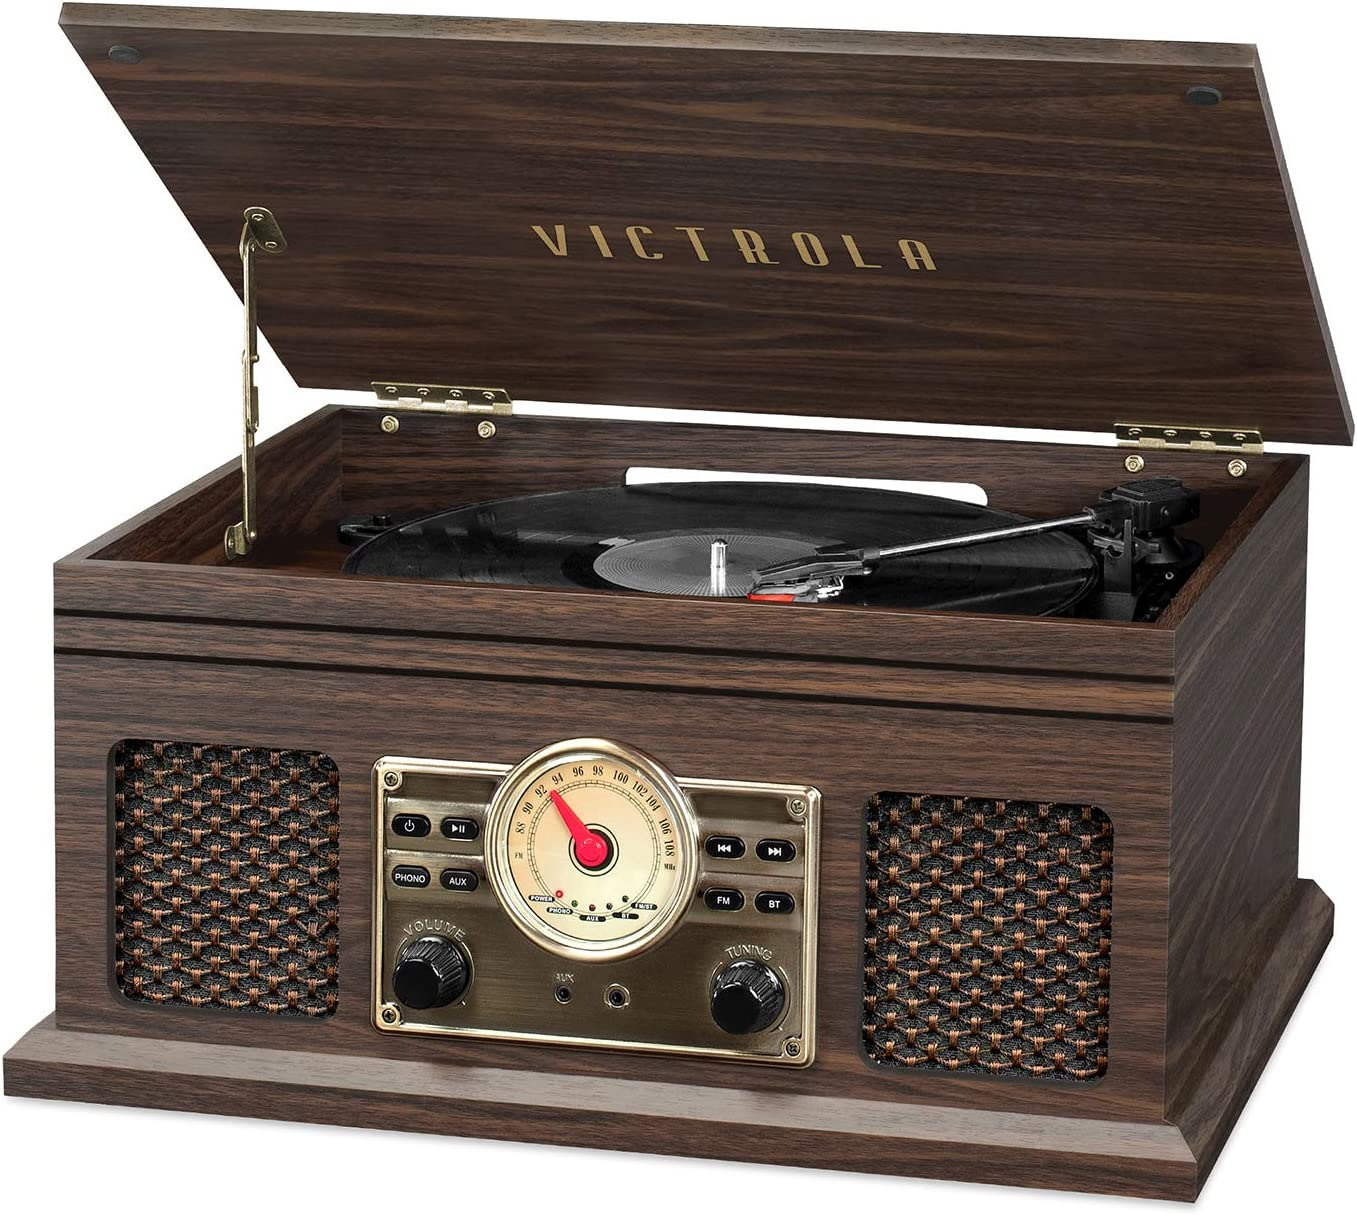 Victrola 4-in-1 Nostalgic Bluetooth Record Player with 3-Speed Record Turntable and FM Radio, Espresso